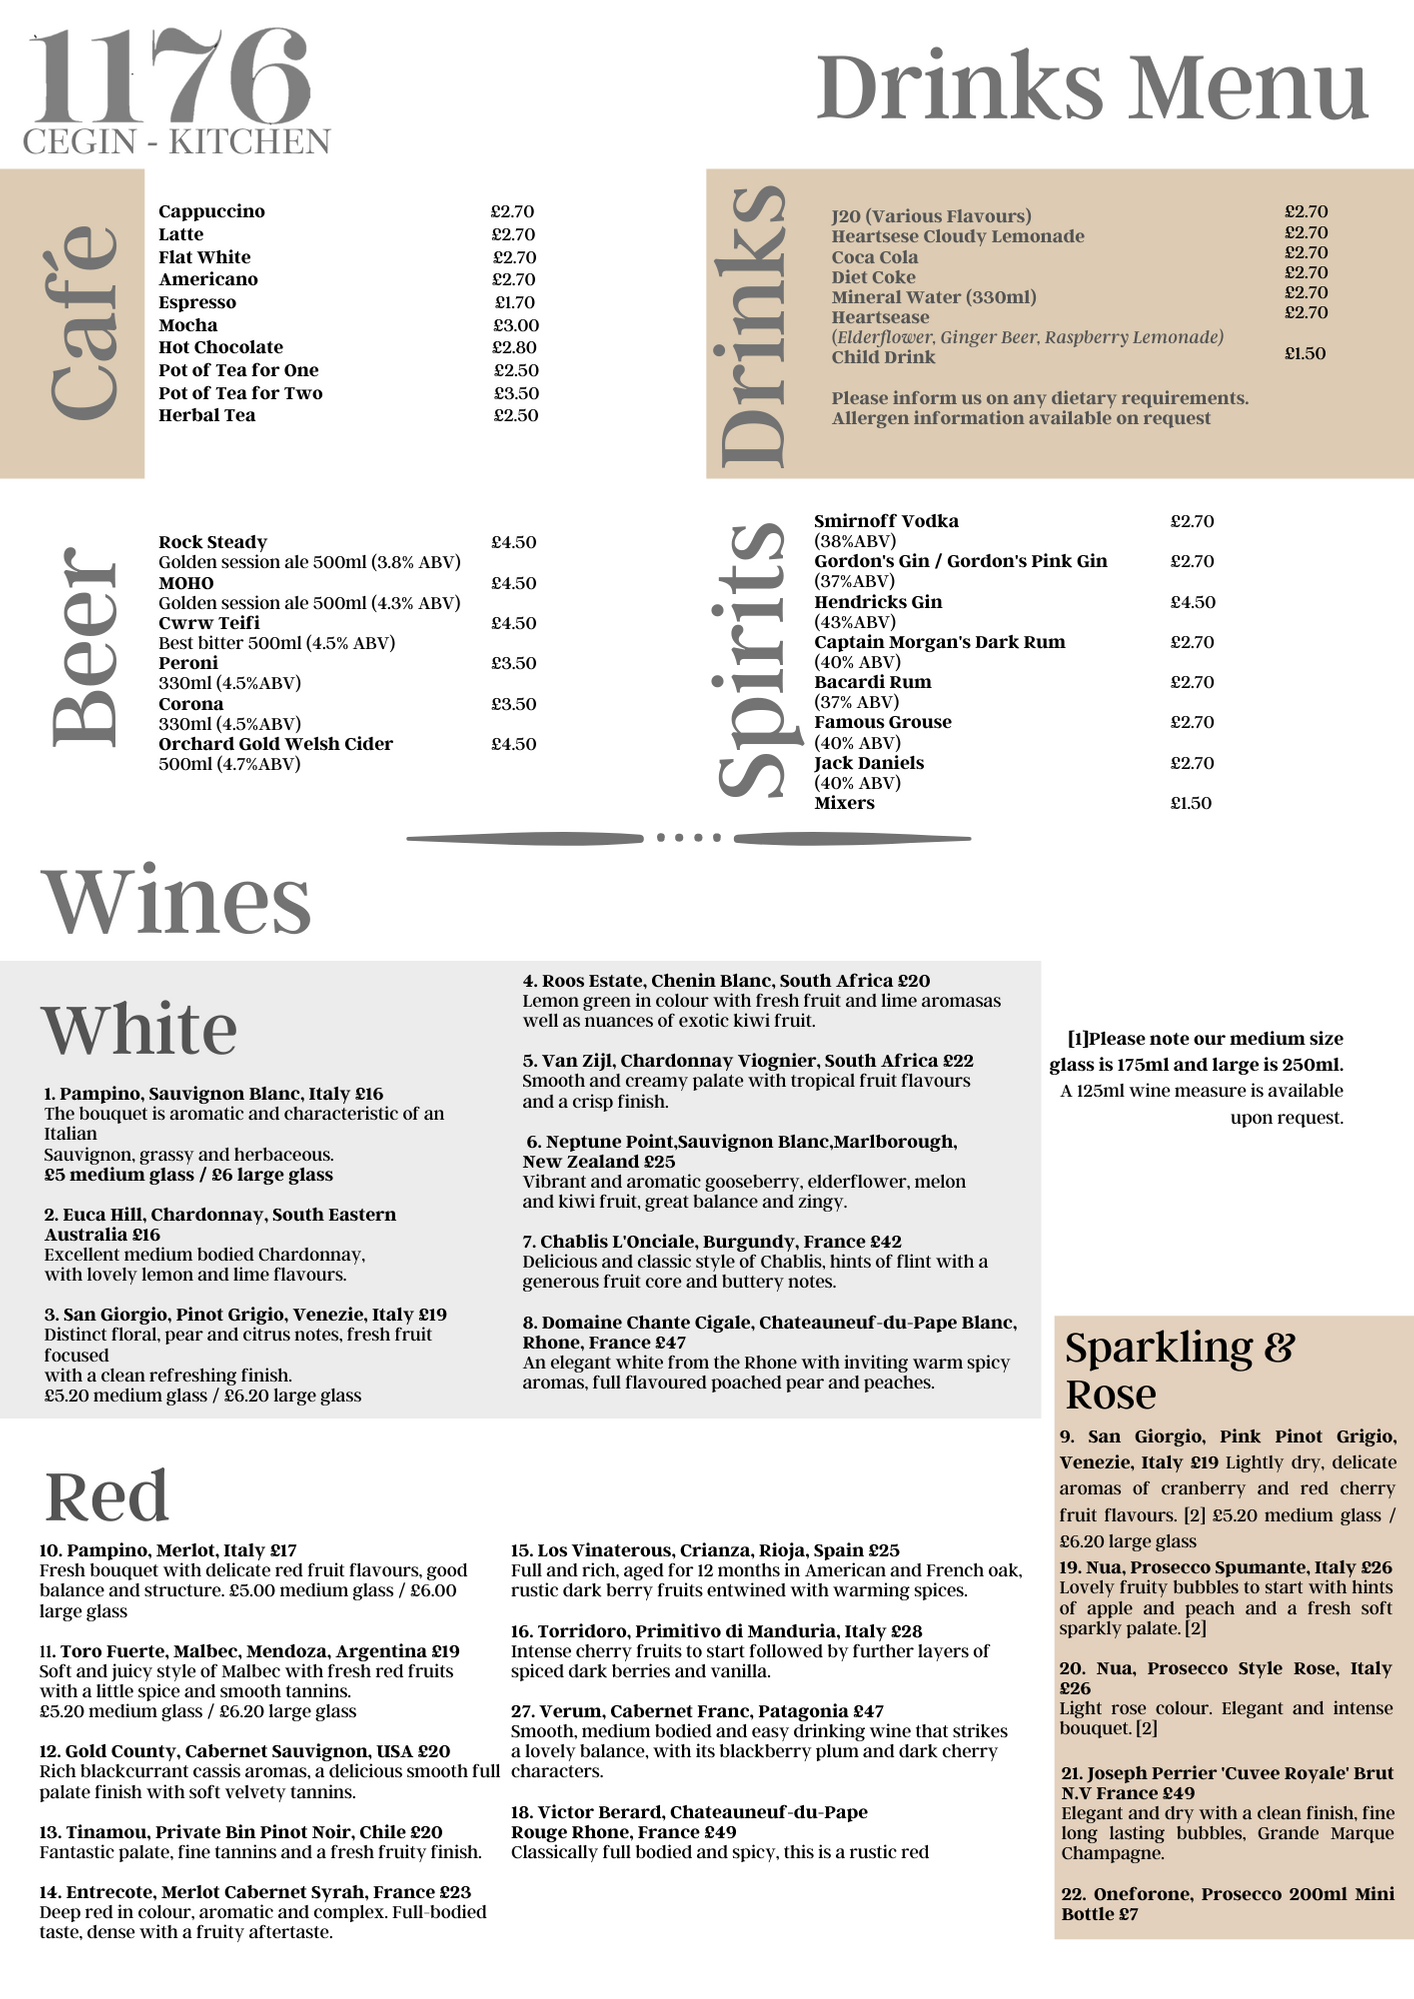 1176 Drinks Menu - New